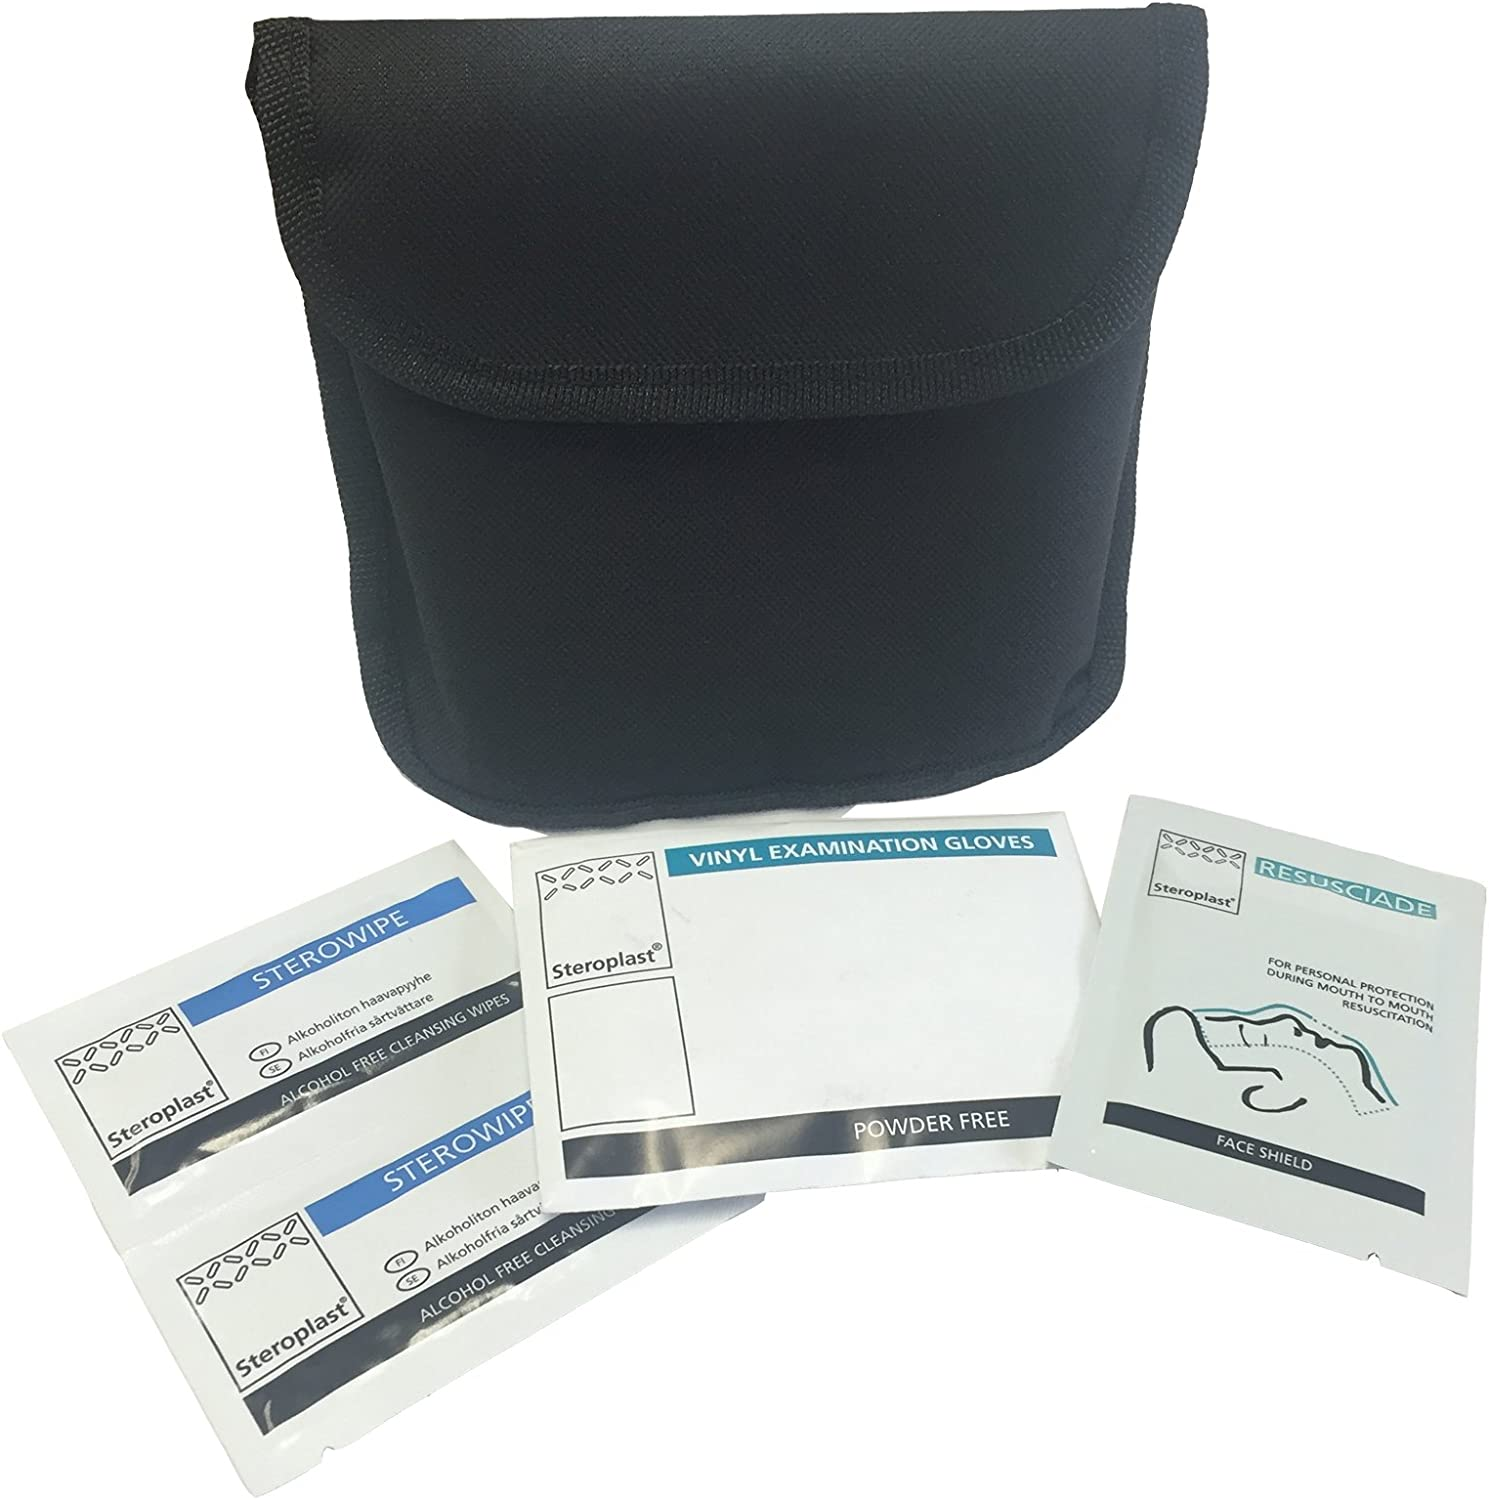 Steroplast PERSONAL RESUSCITATION TRAVEL FIRST AID DURABLE VELCRO ISOLADE KIT BLACK BELT POUCH